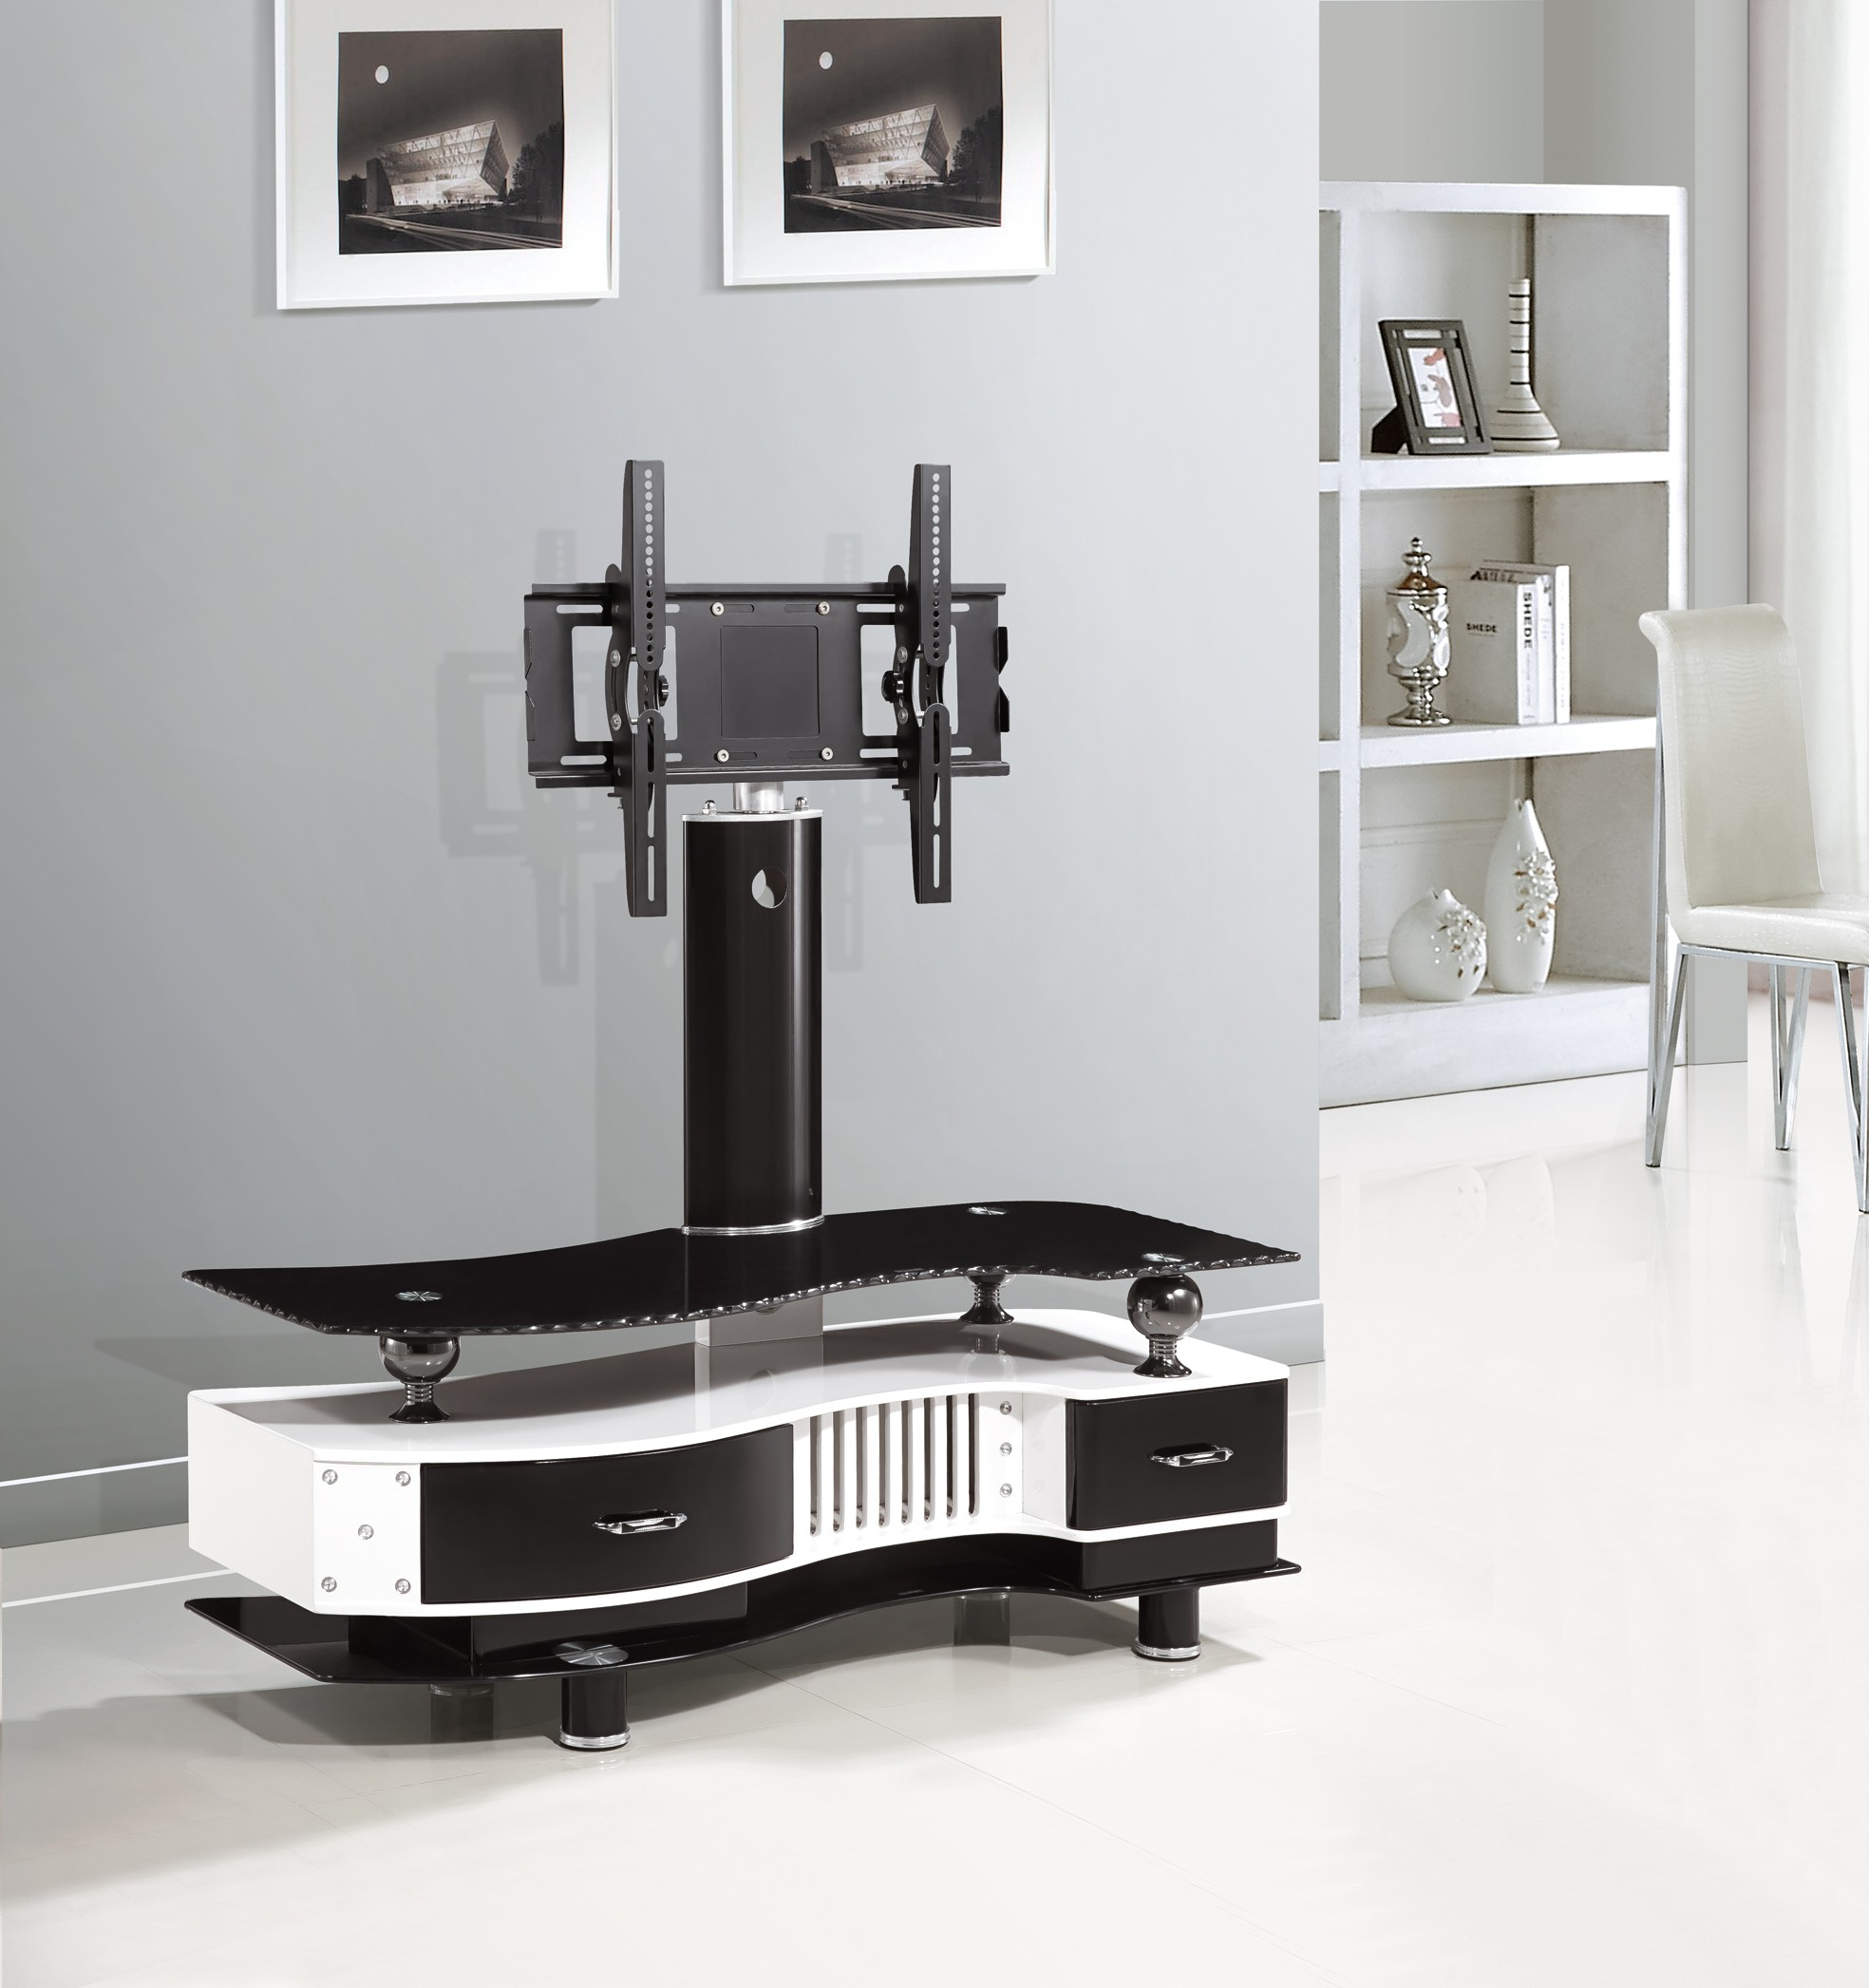 Ts 1555 Tv Stand Black & White – Tv Stands – Products In Well Known White And Black Tv Stands (View 14 of 20)